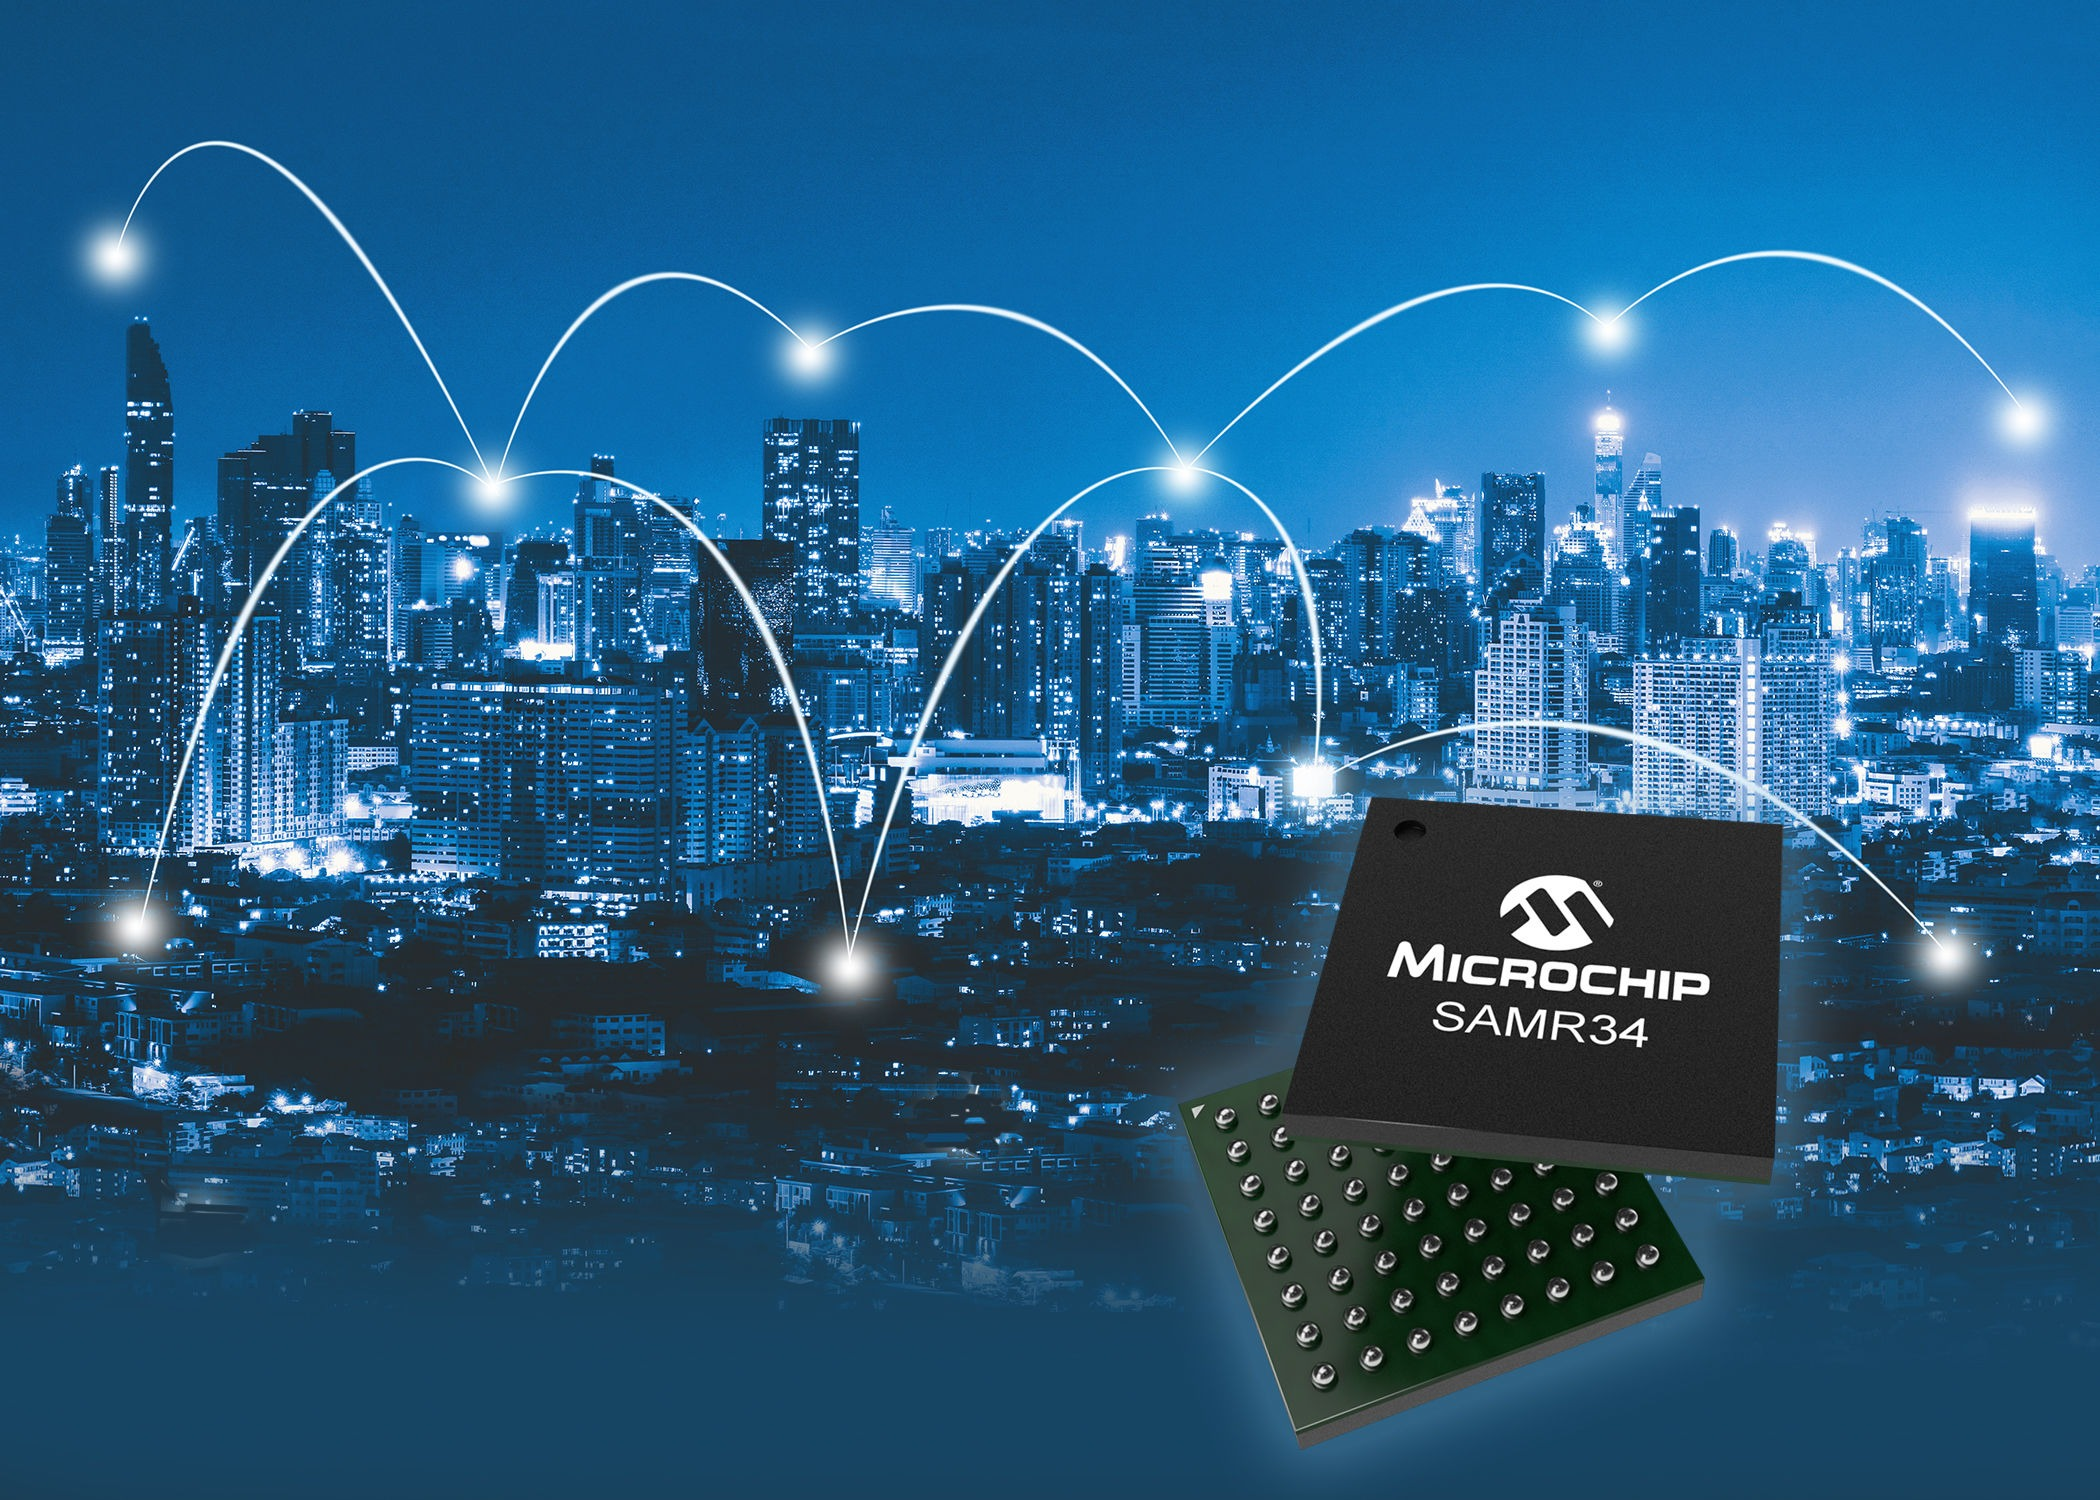 Actility collaborates with Microchip Technology